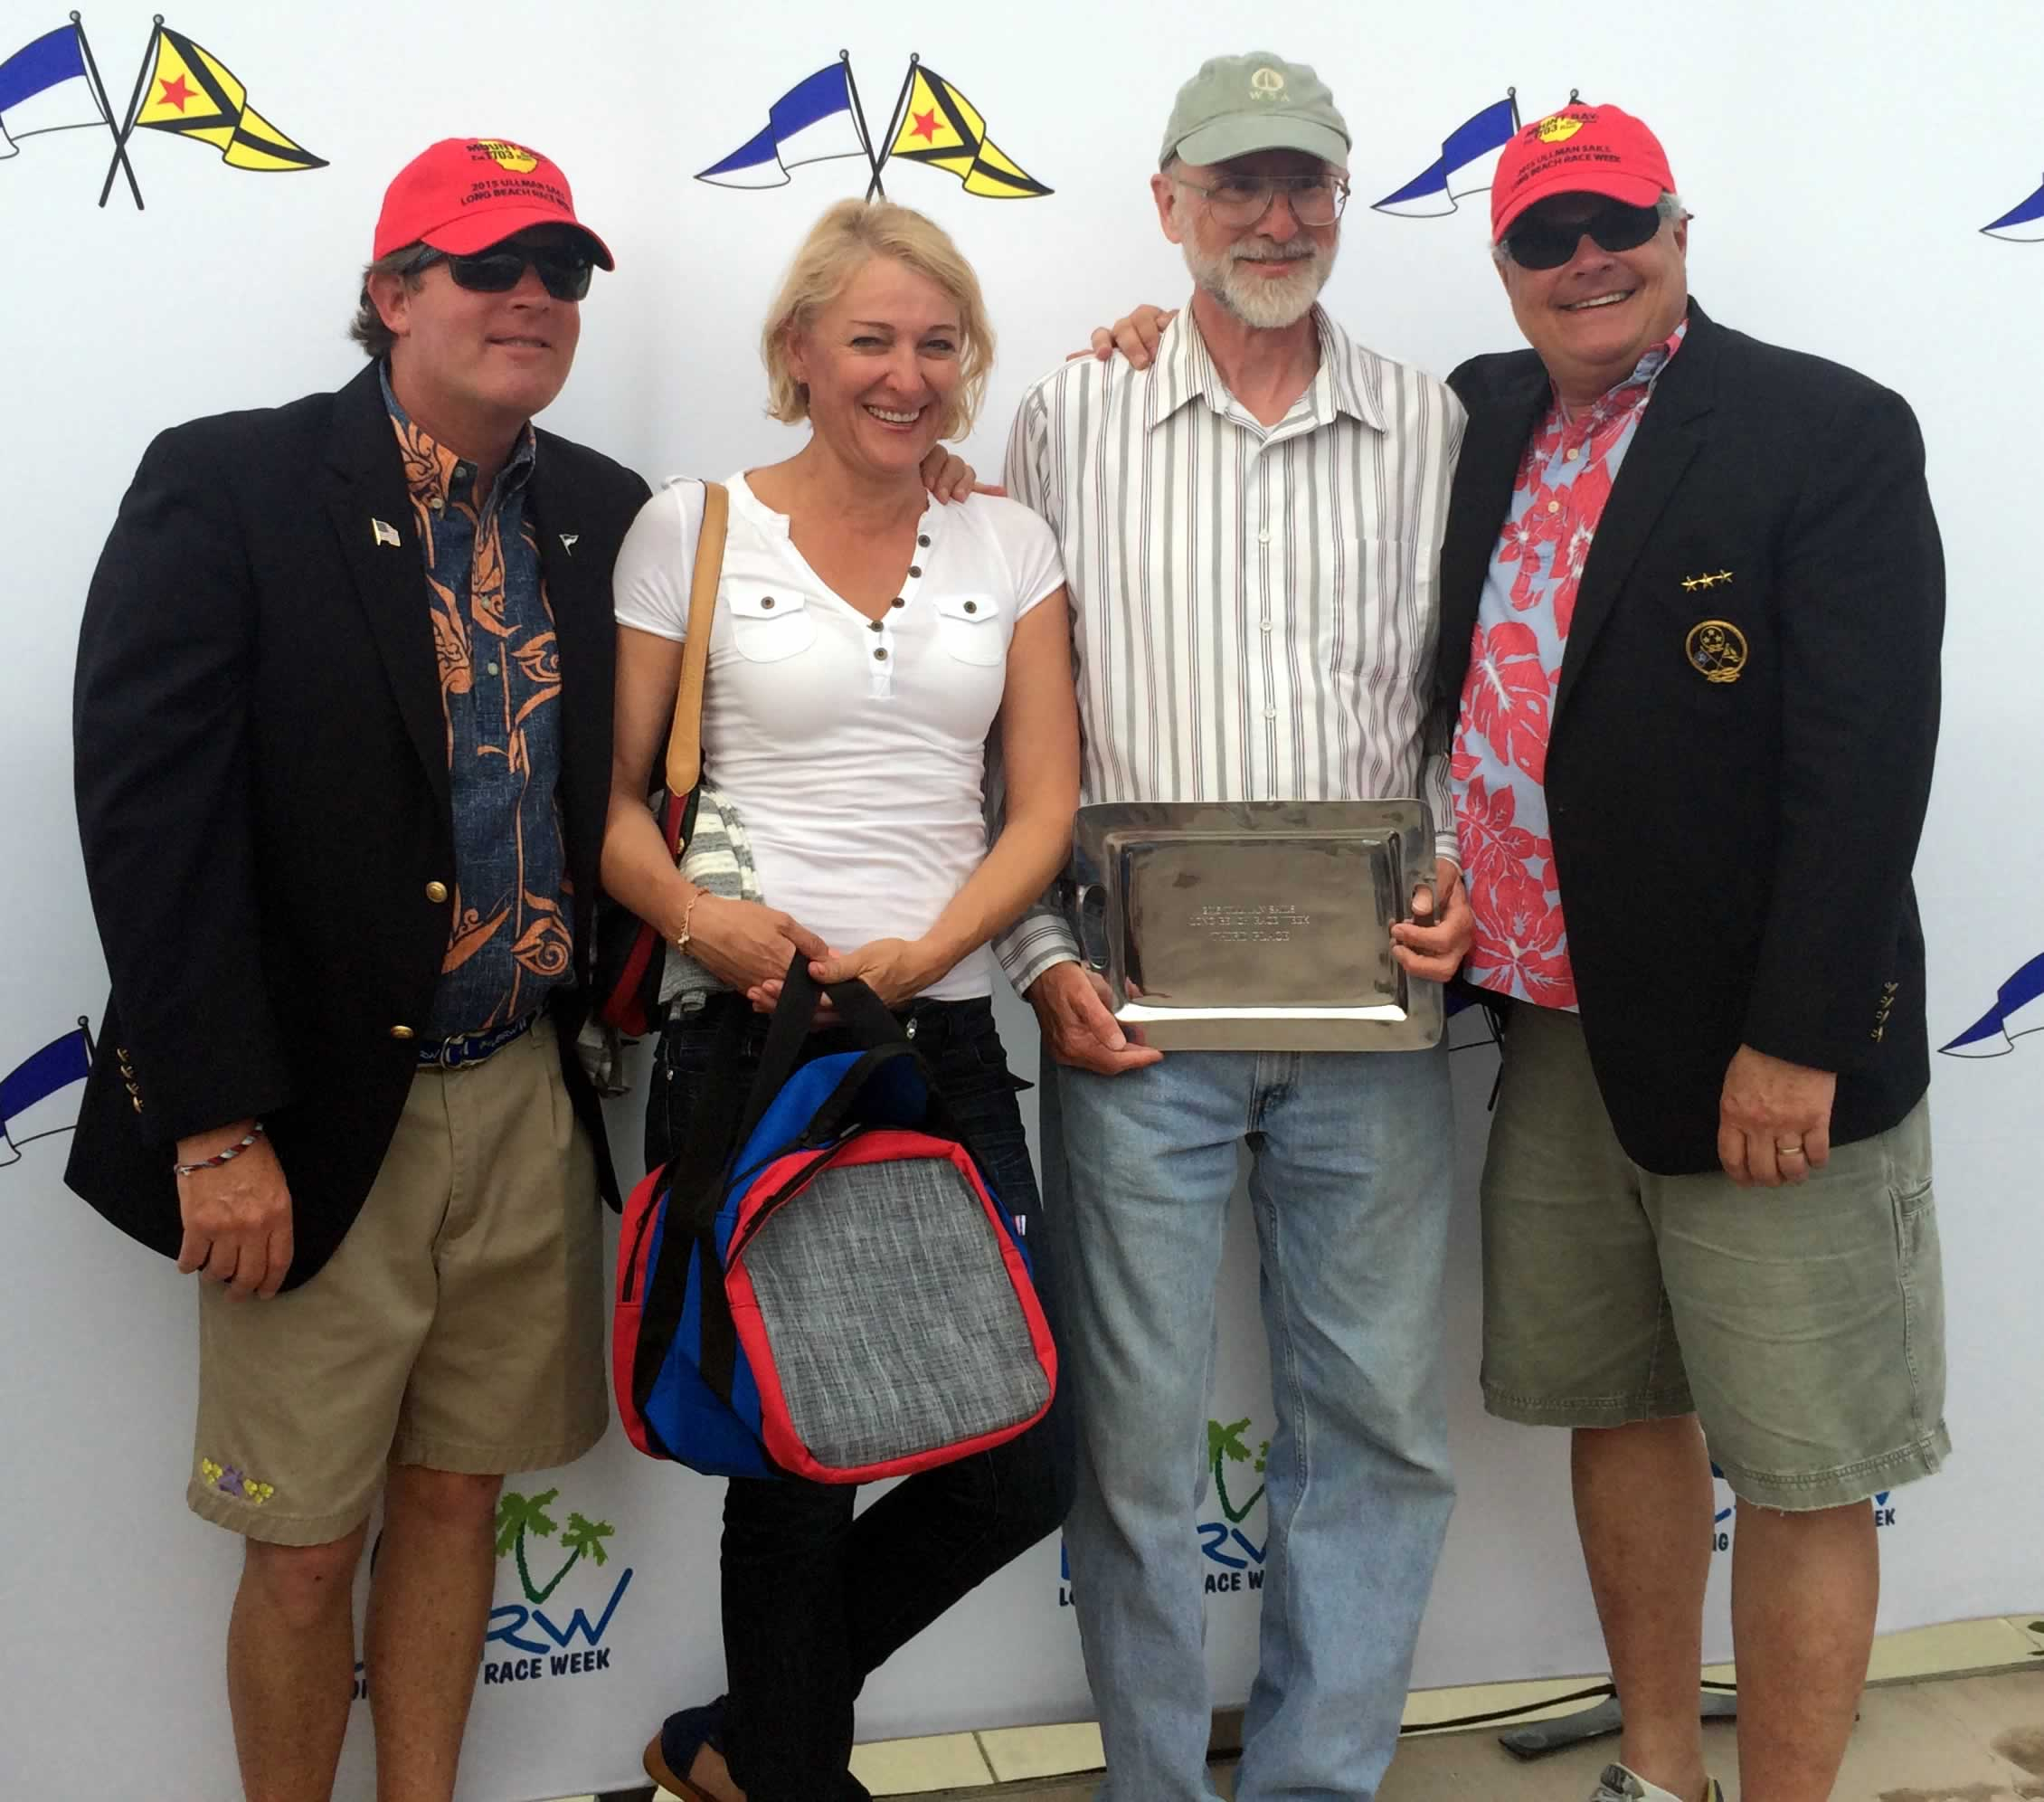 """Dave Angers, holding trophy plate, and his """"Miss Demeanor"""" were 3rd in the J/80 fleet."""